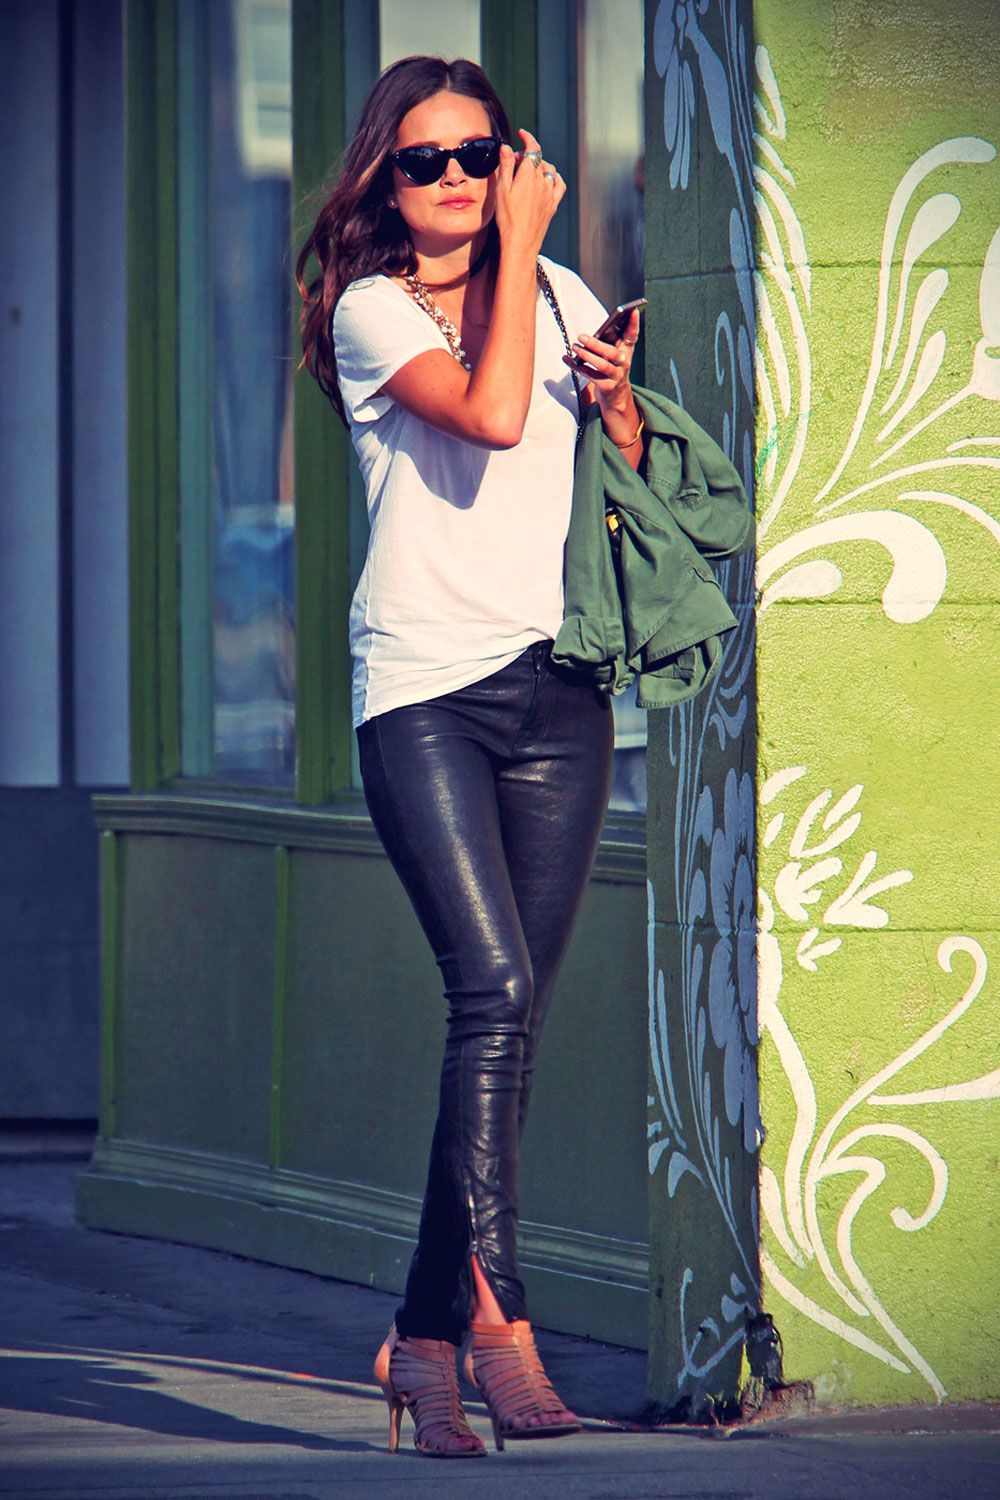 Courtney Robertson rocks a pair of leather pants